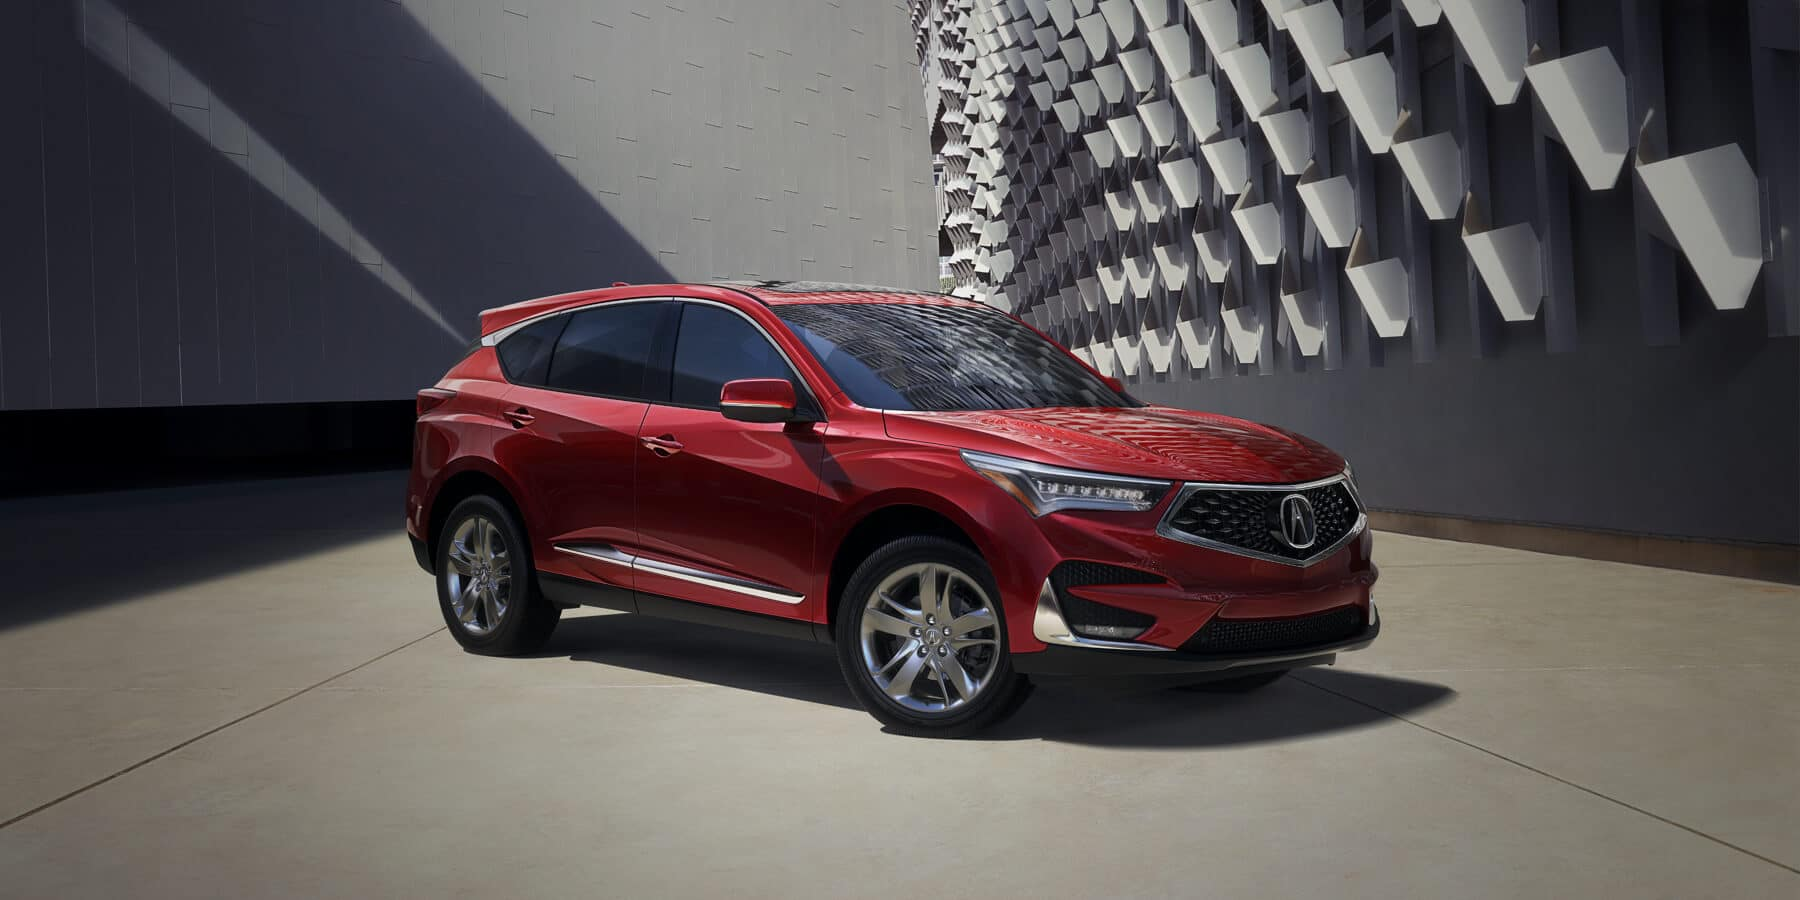 Acura Des Moines >> Midwest Acura Dealers Serving Chicago Des Moines Omaha And